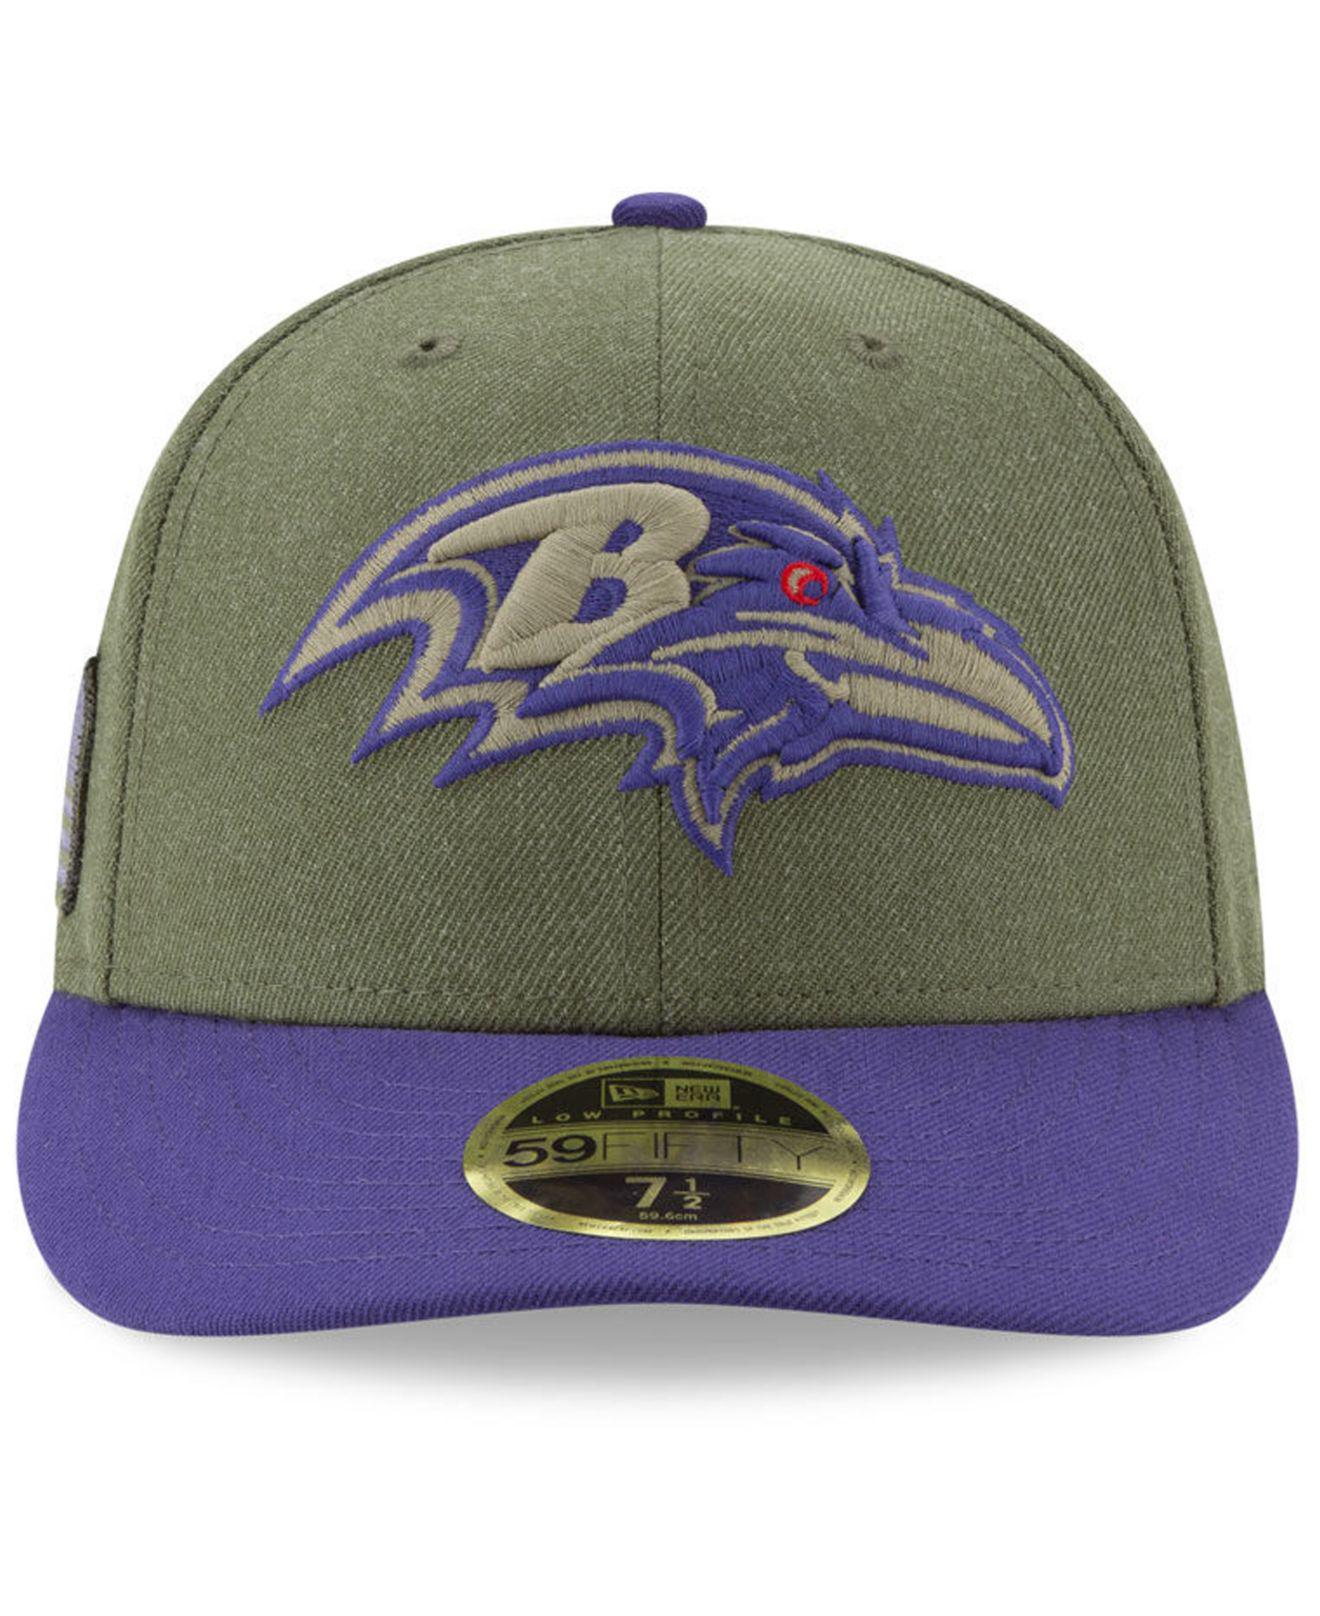 bcd3715e145 Lyst - KTZ Baltimore Ravens Salute To Service Low Profile 59fifty Fitted  Cap 2018 in Green for Men